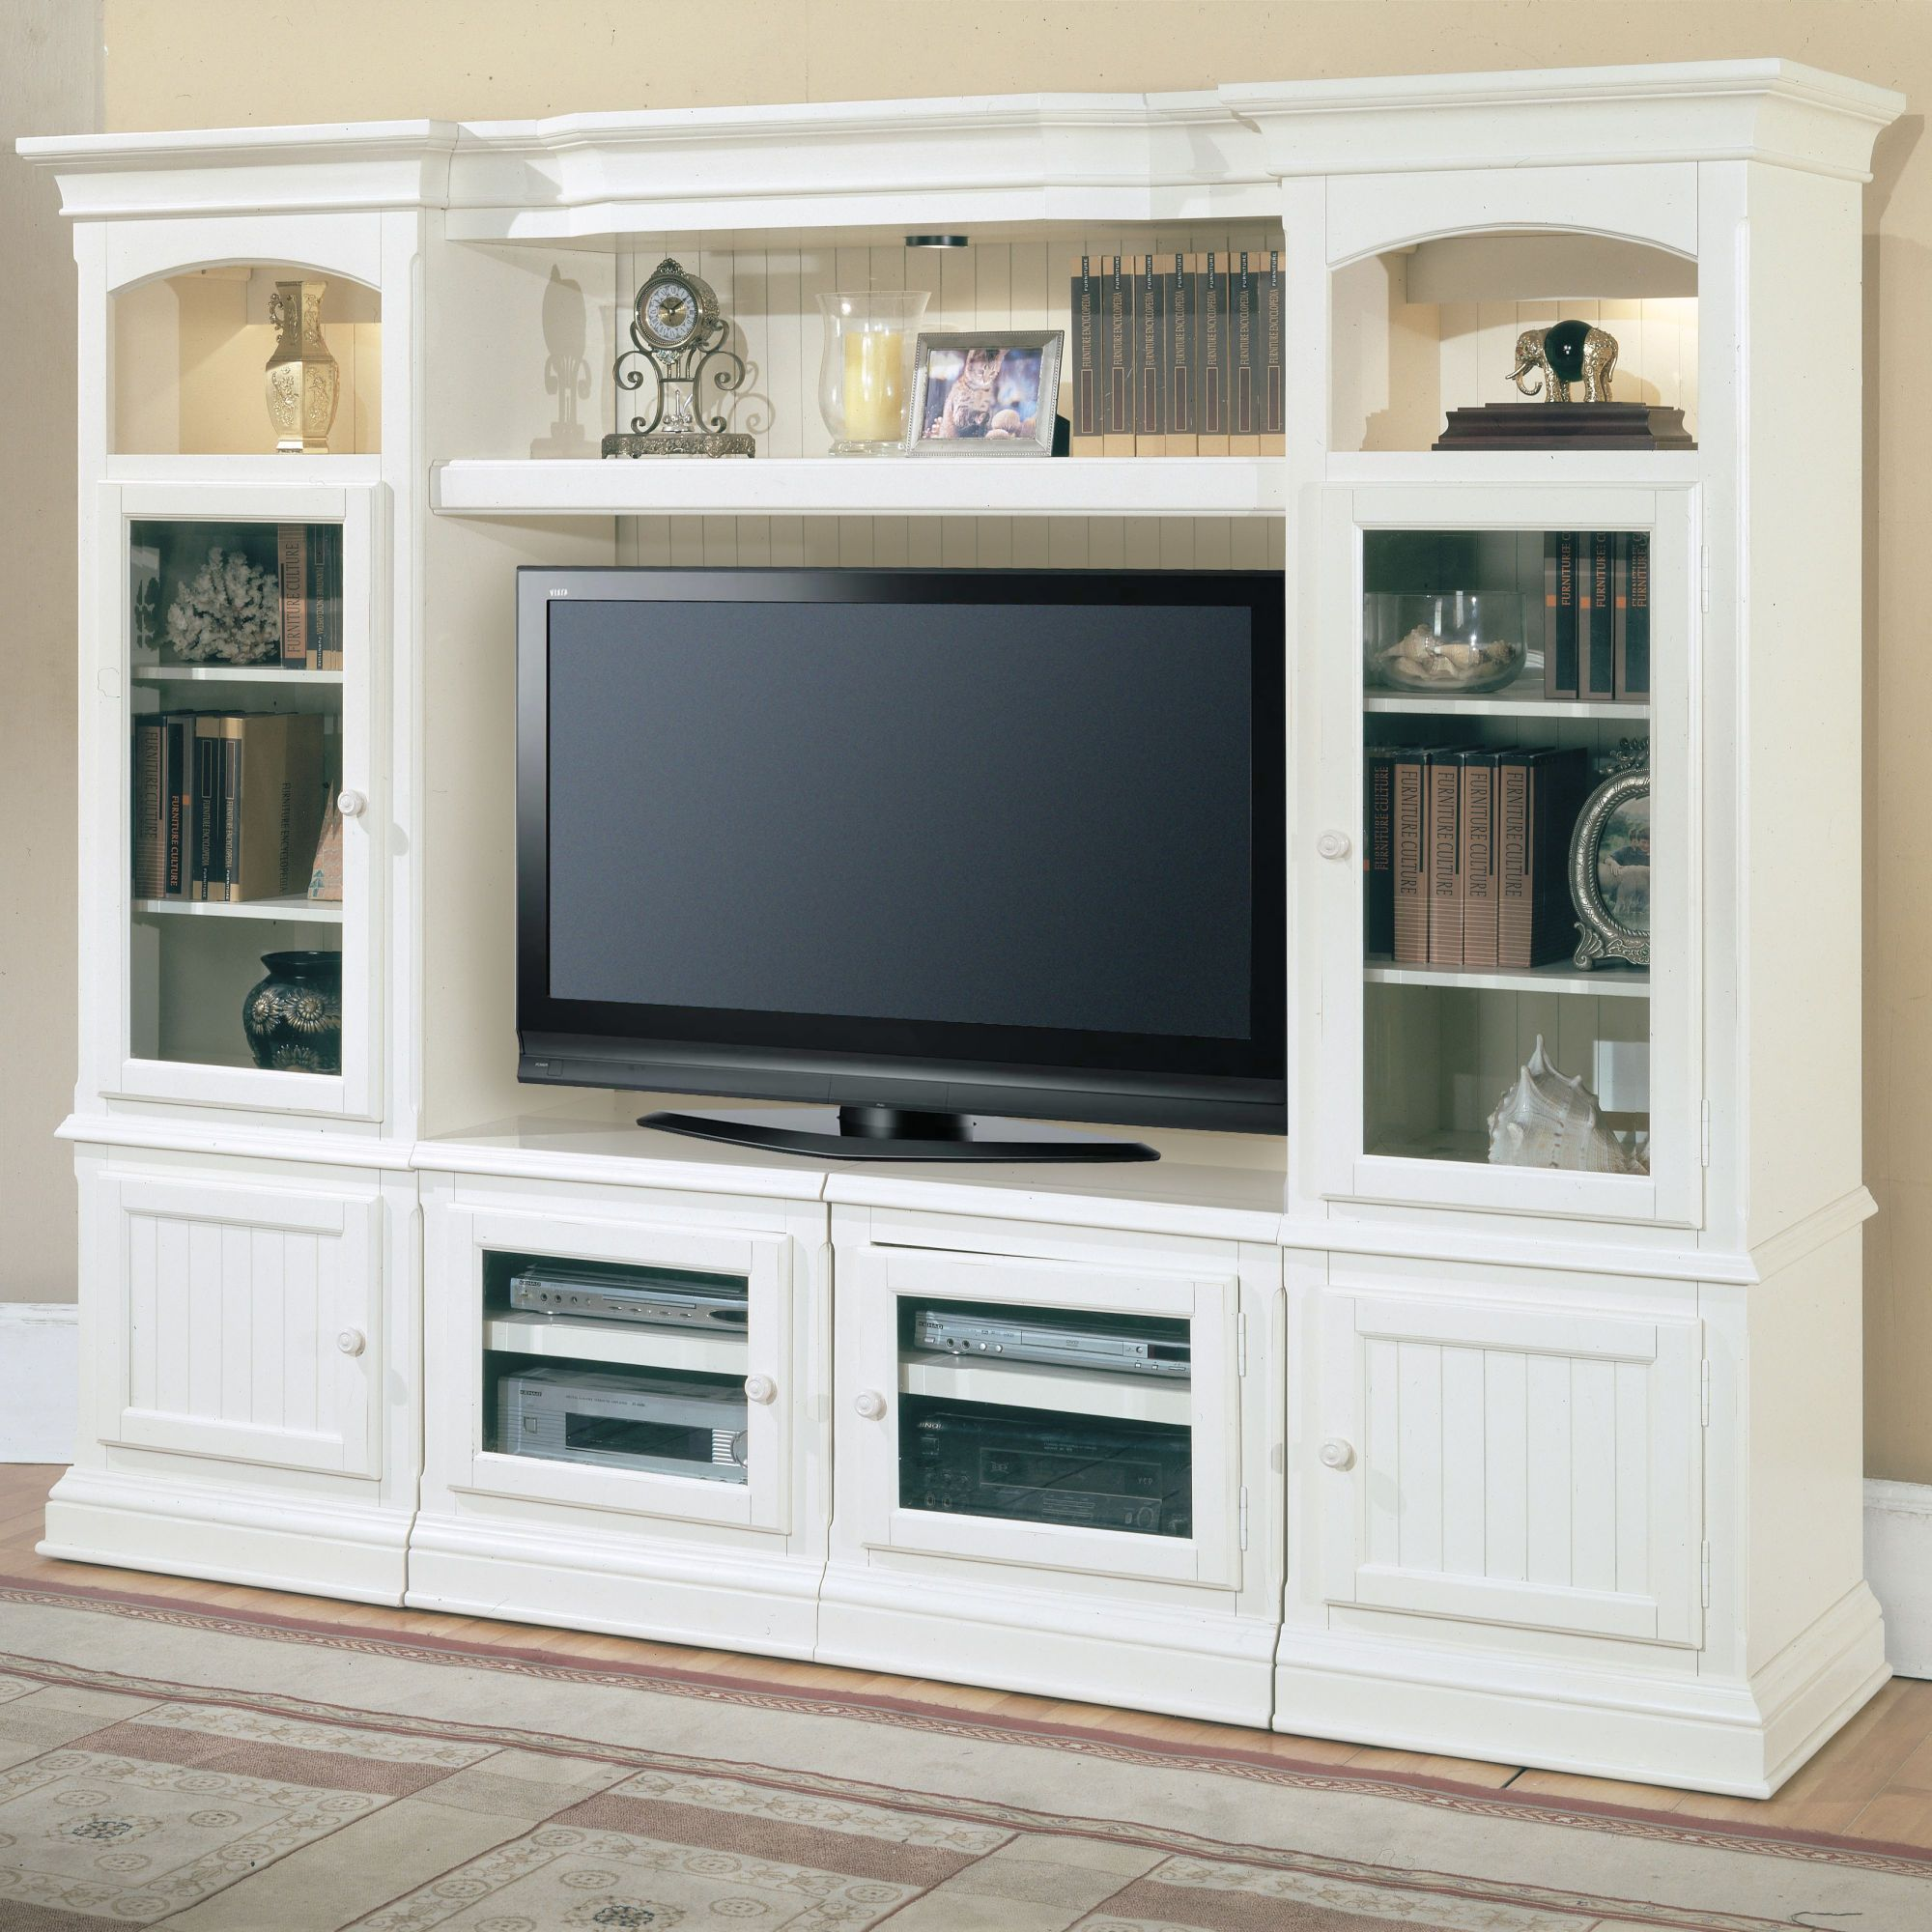 Built In Wall Units For Bedrooms Tv Wall Unit  For The Home  Pinterest  Tv Walls Tvs And Walls